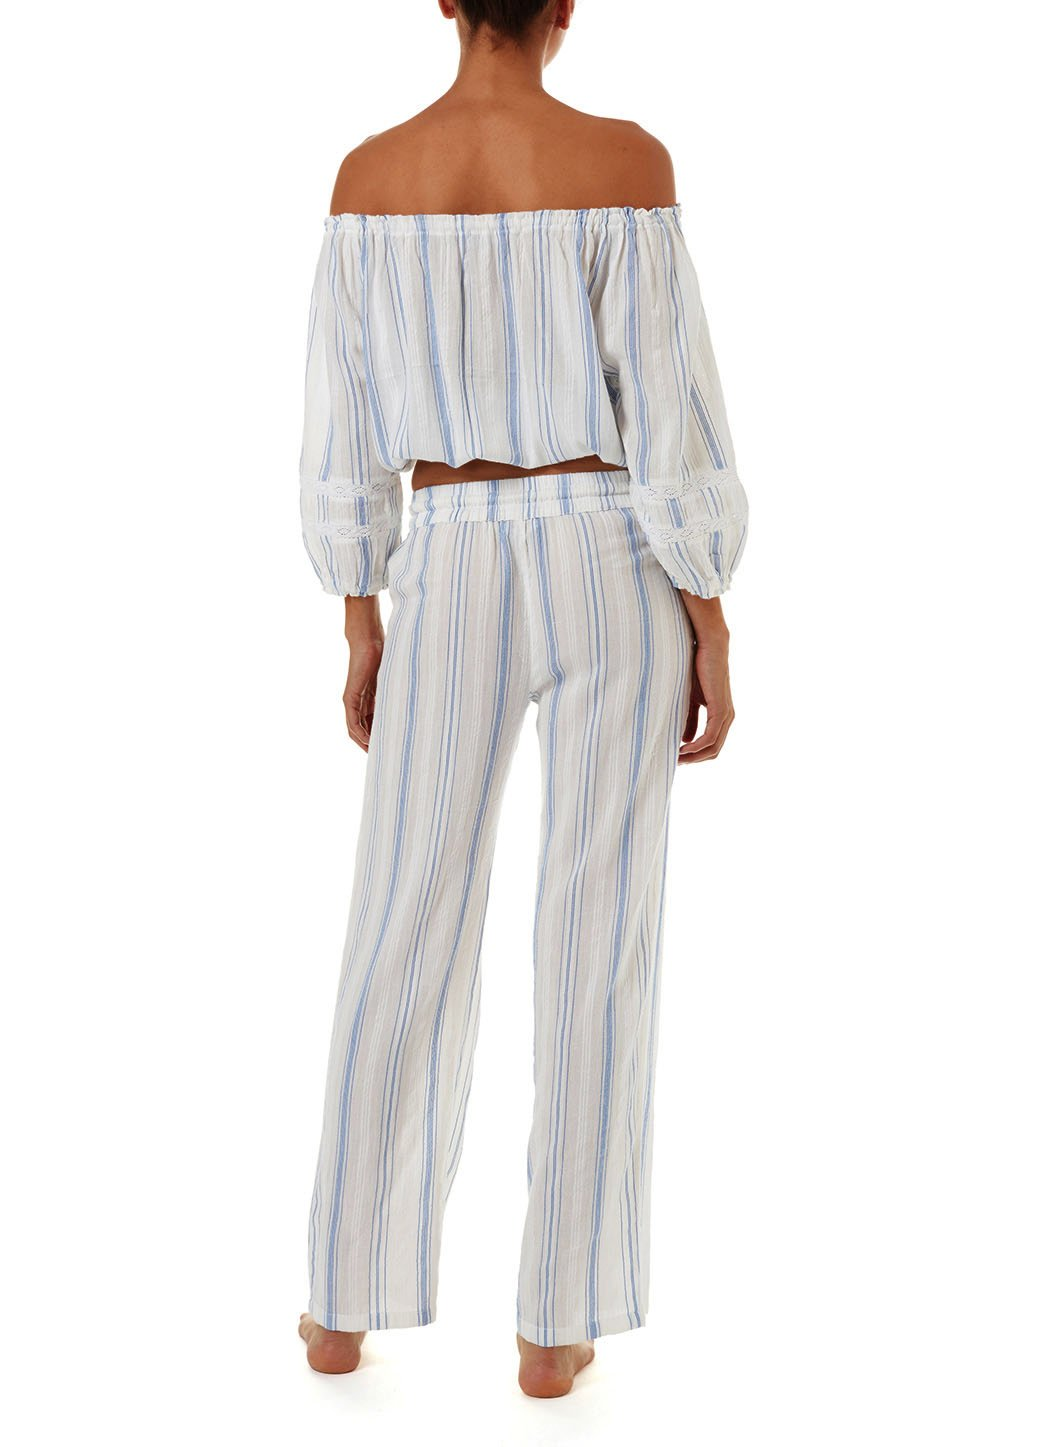 azura blue stripe offtheshoulder top 2019 B